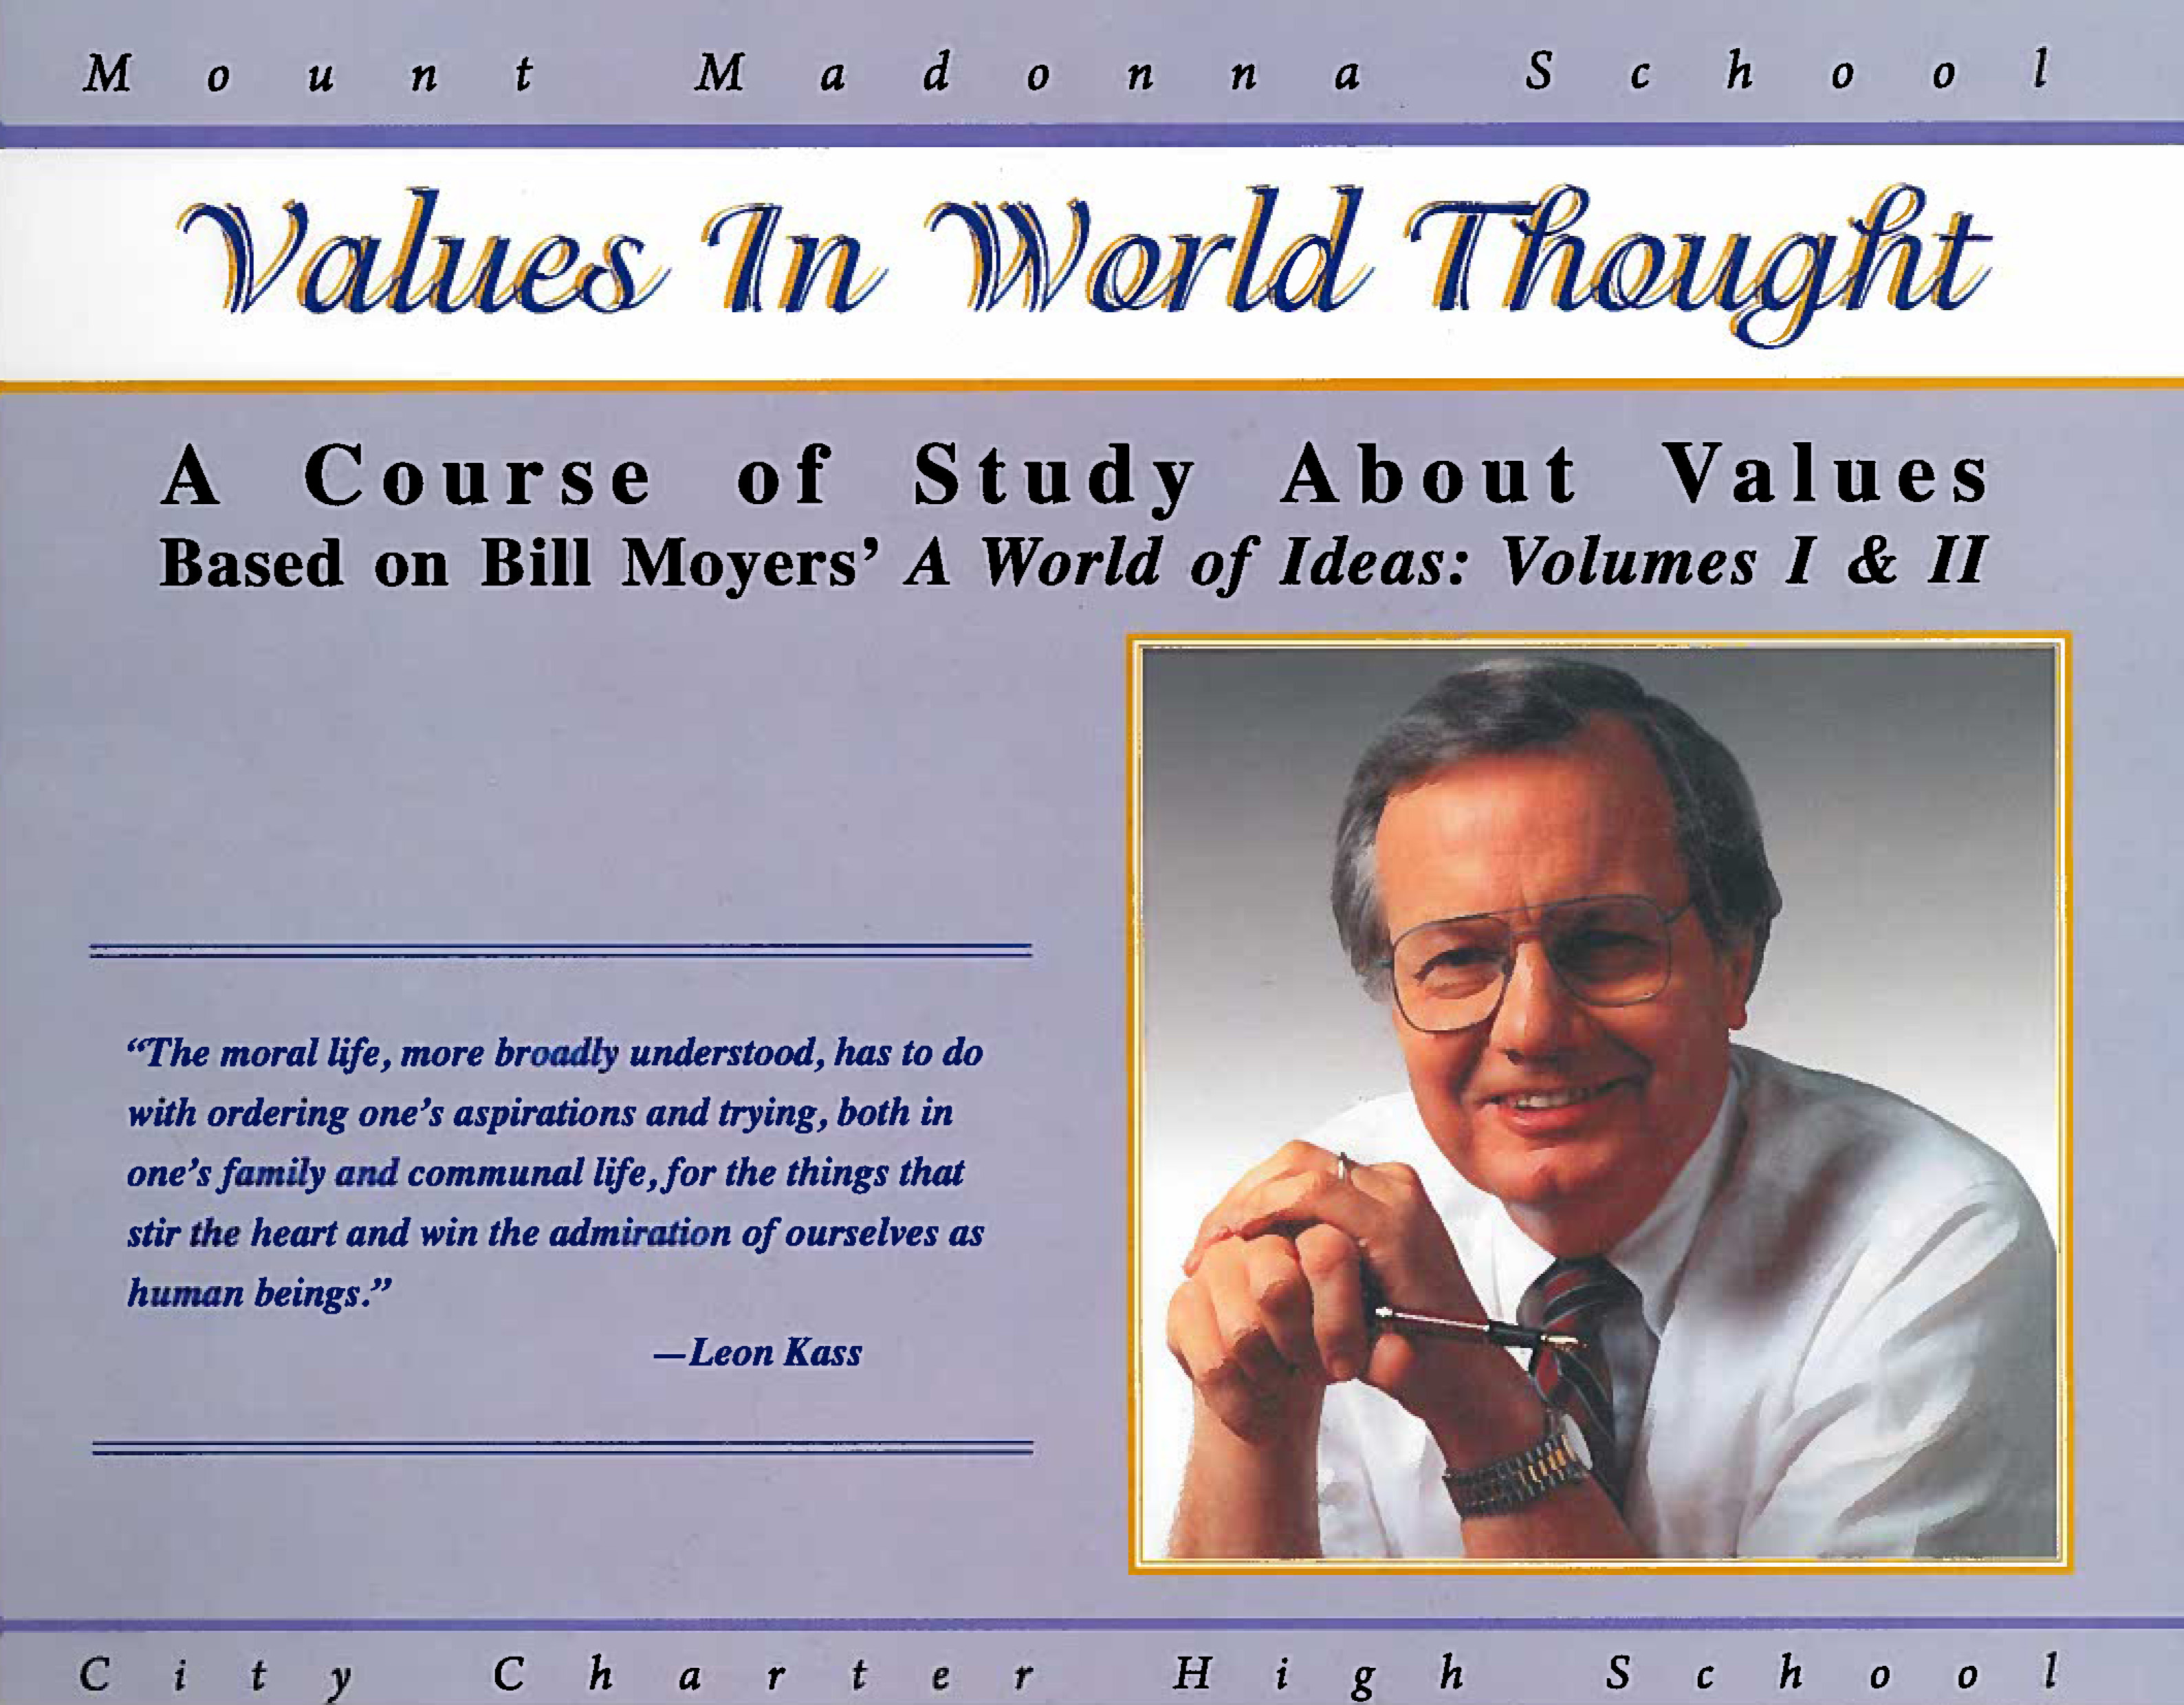 Values in World Thought: A Course of Study About Values